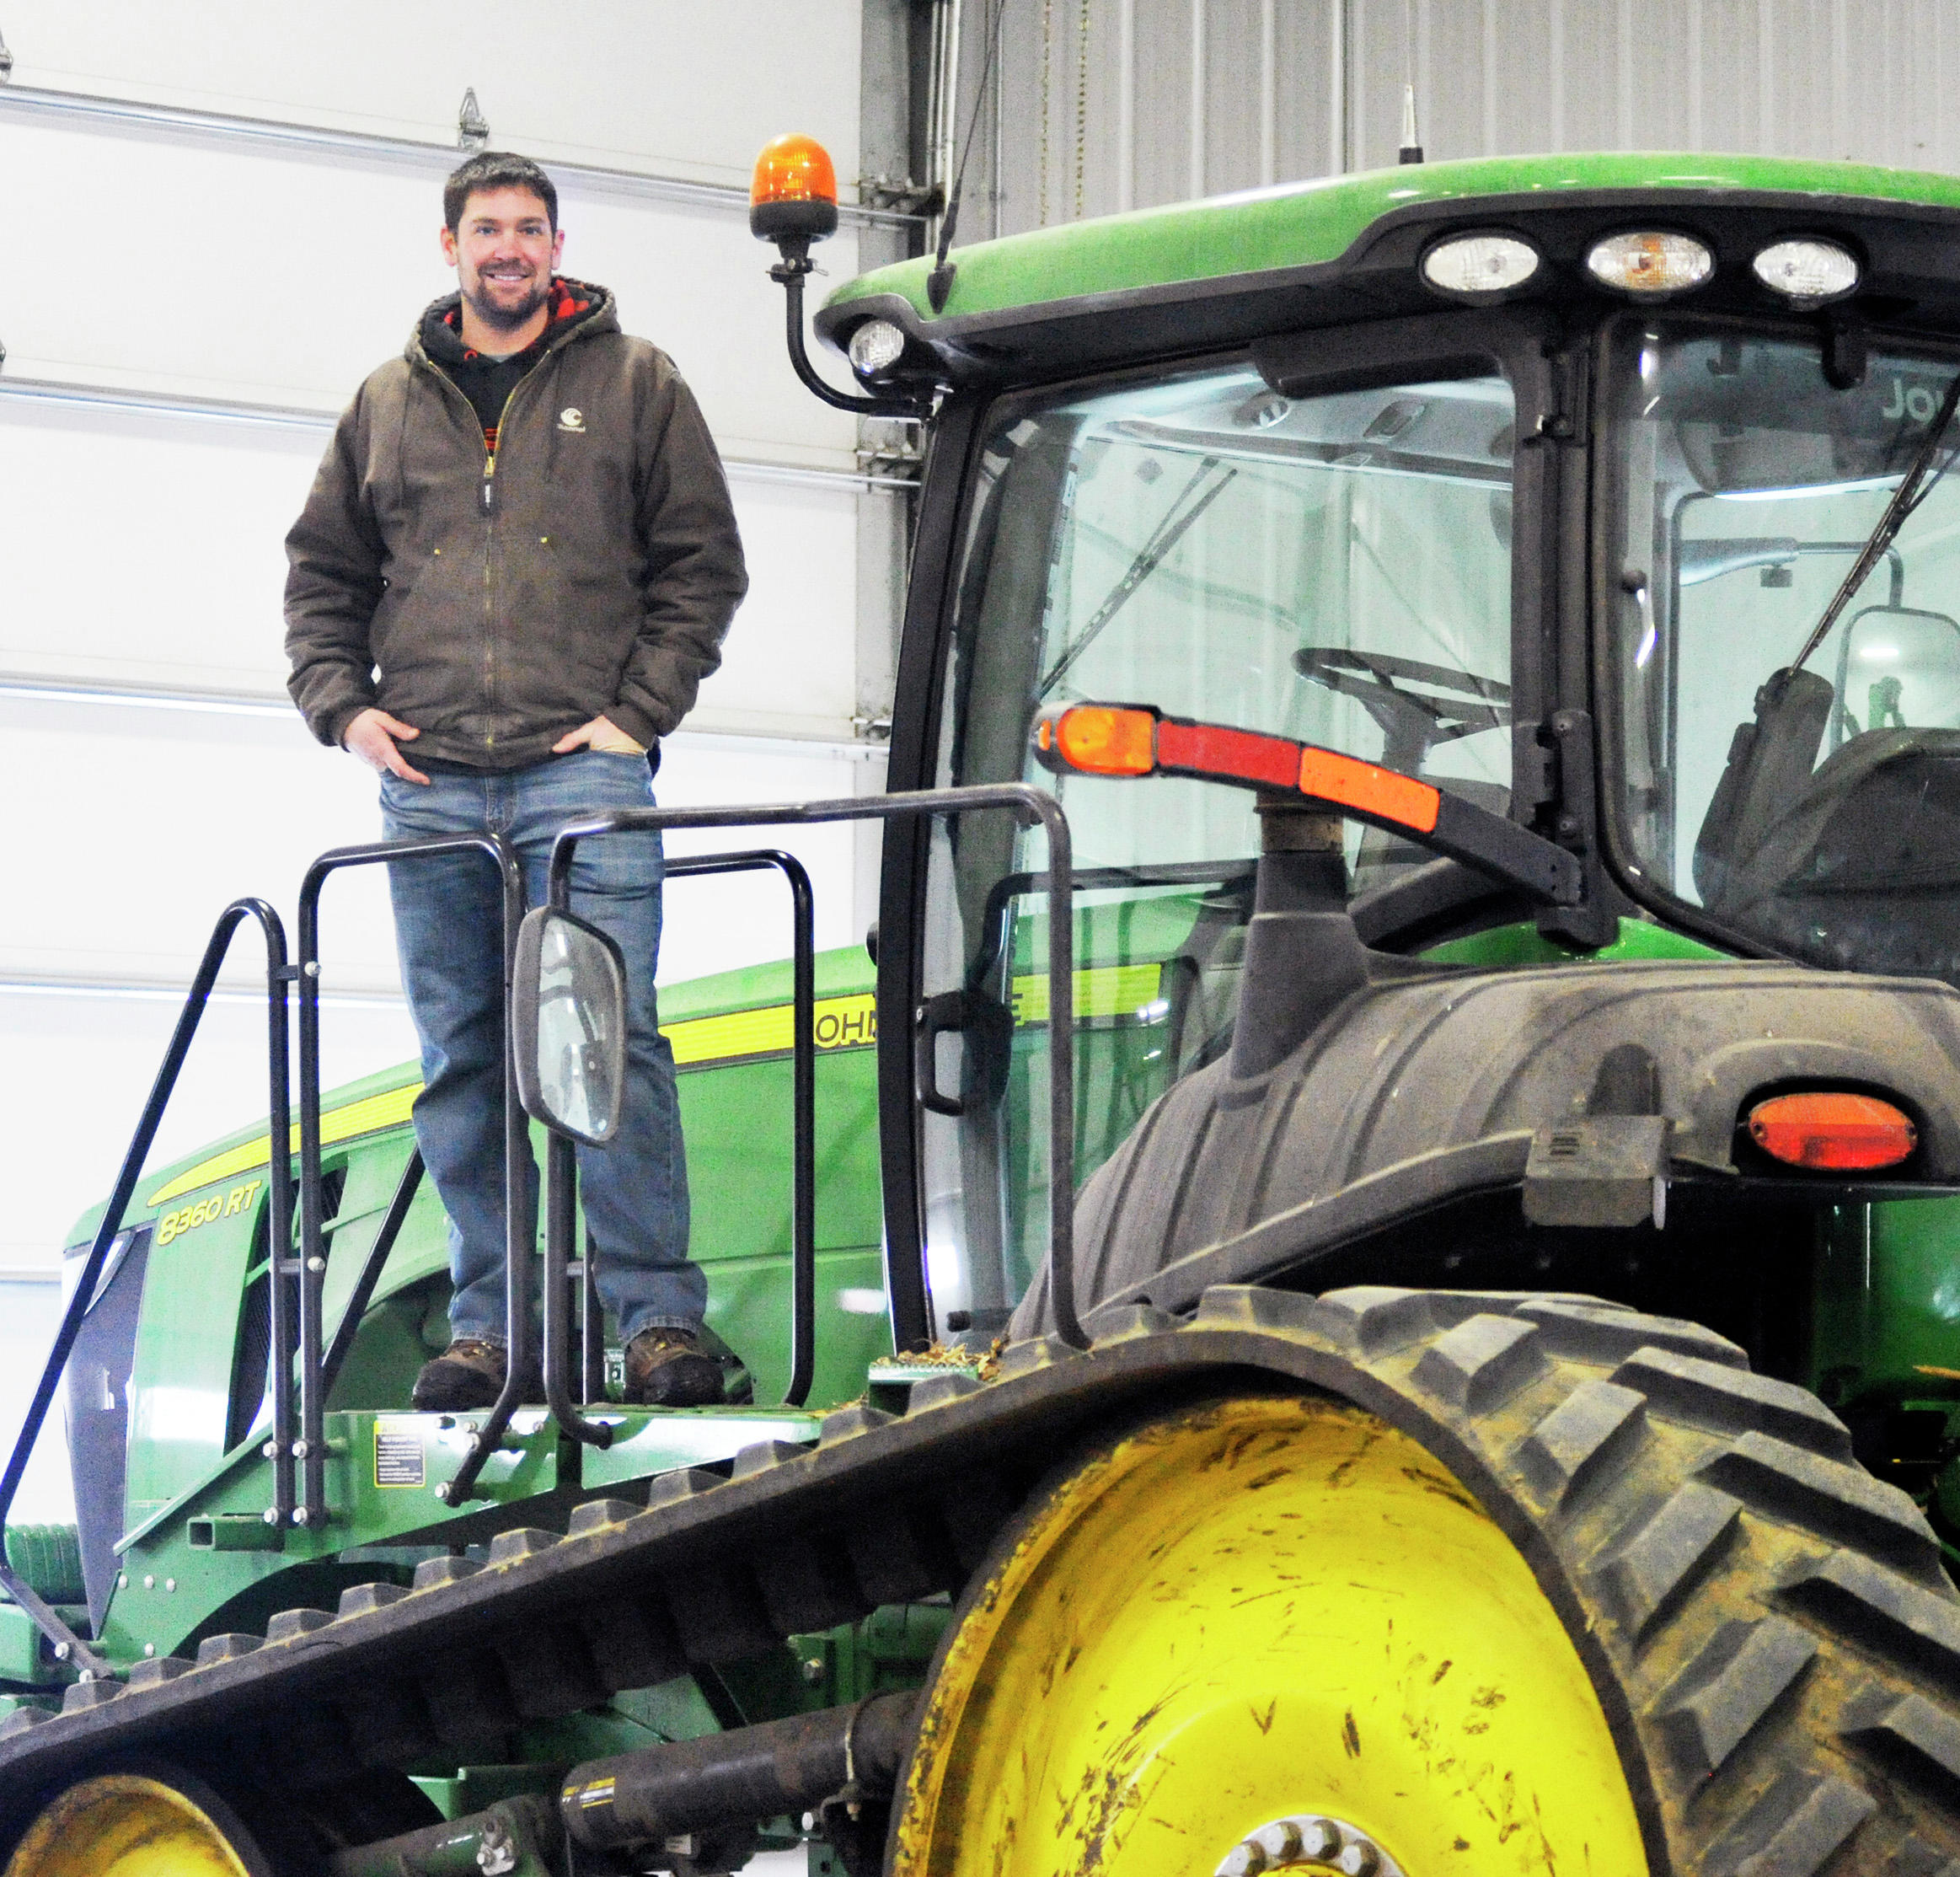 """Zach Johnson stands on the side of the tractor he used to film his viral """"Combine Karaoke"""" video. (Jared Rubado / Echo Press)"""